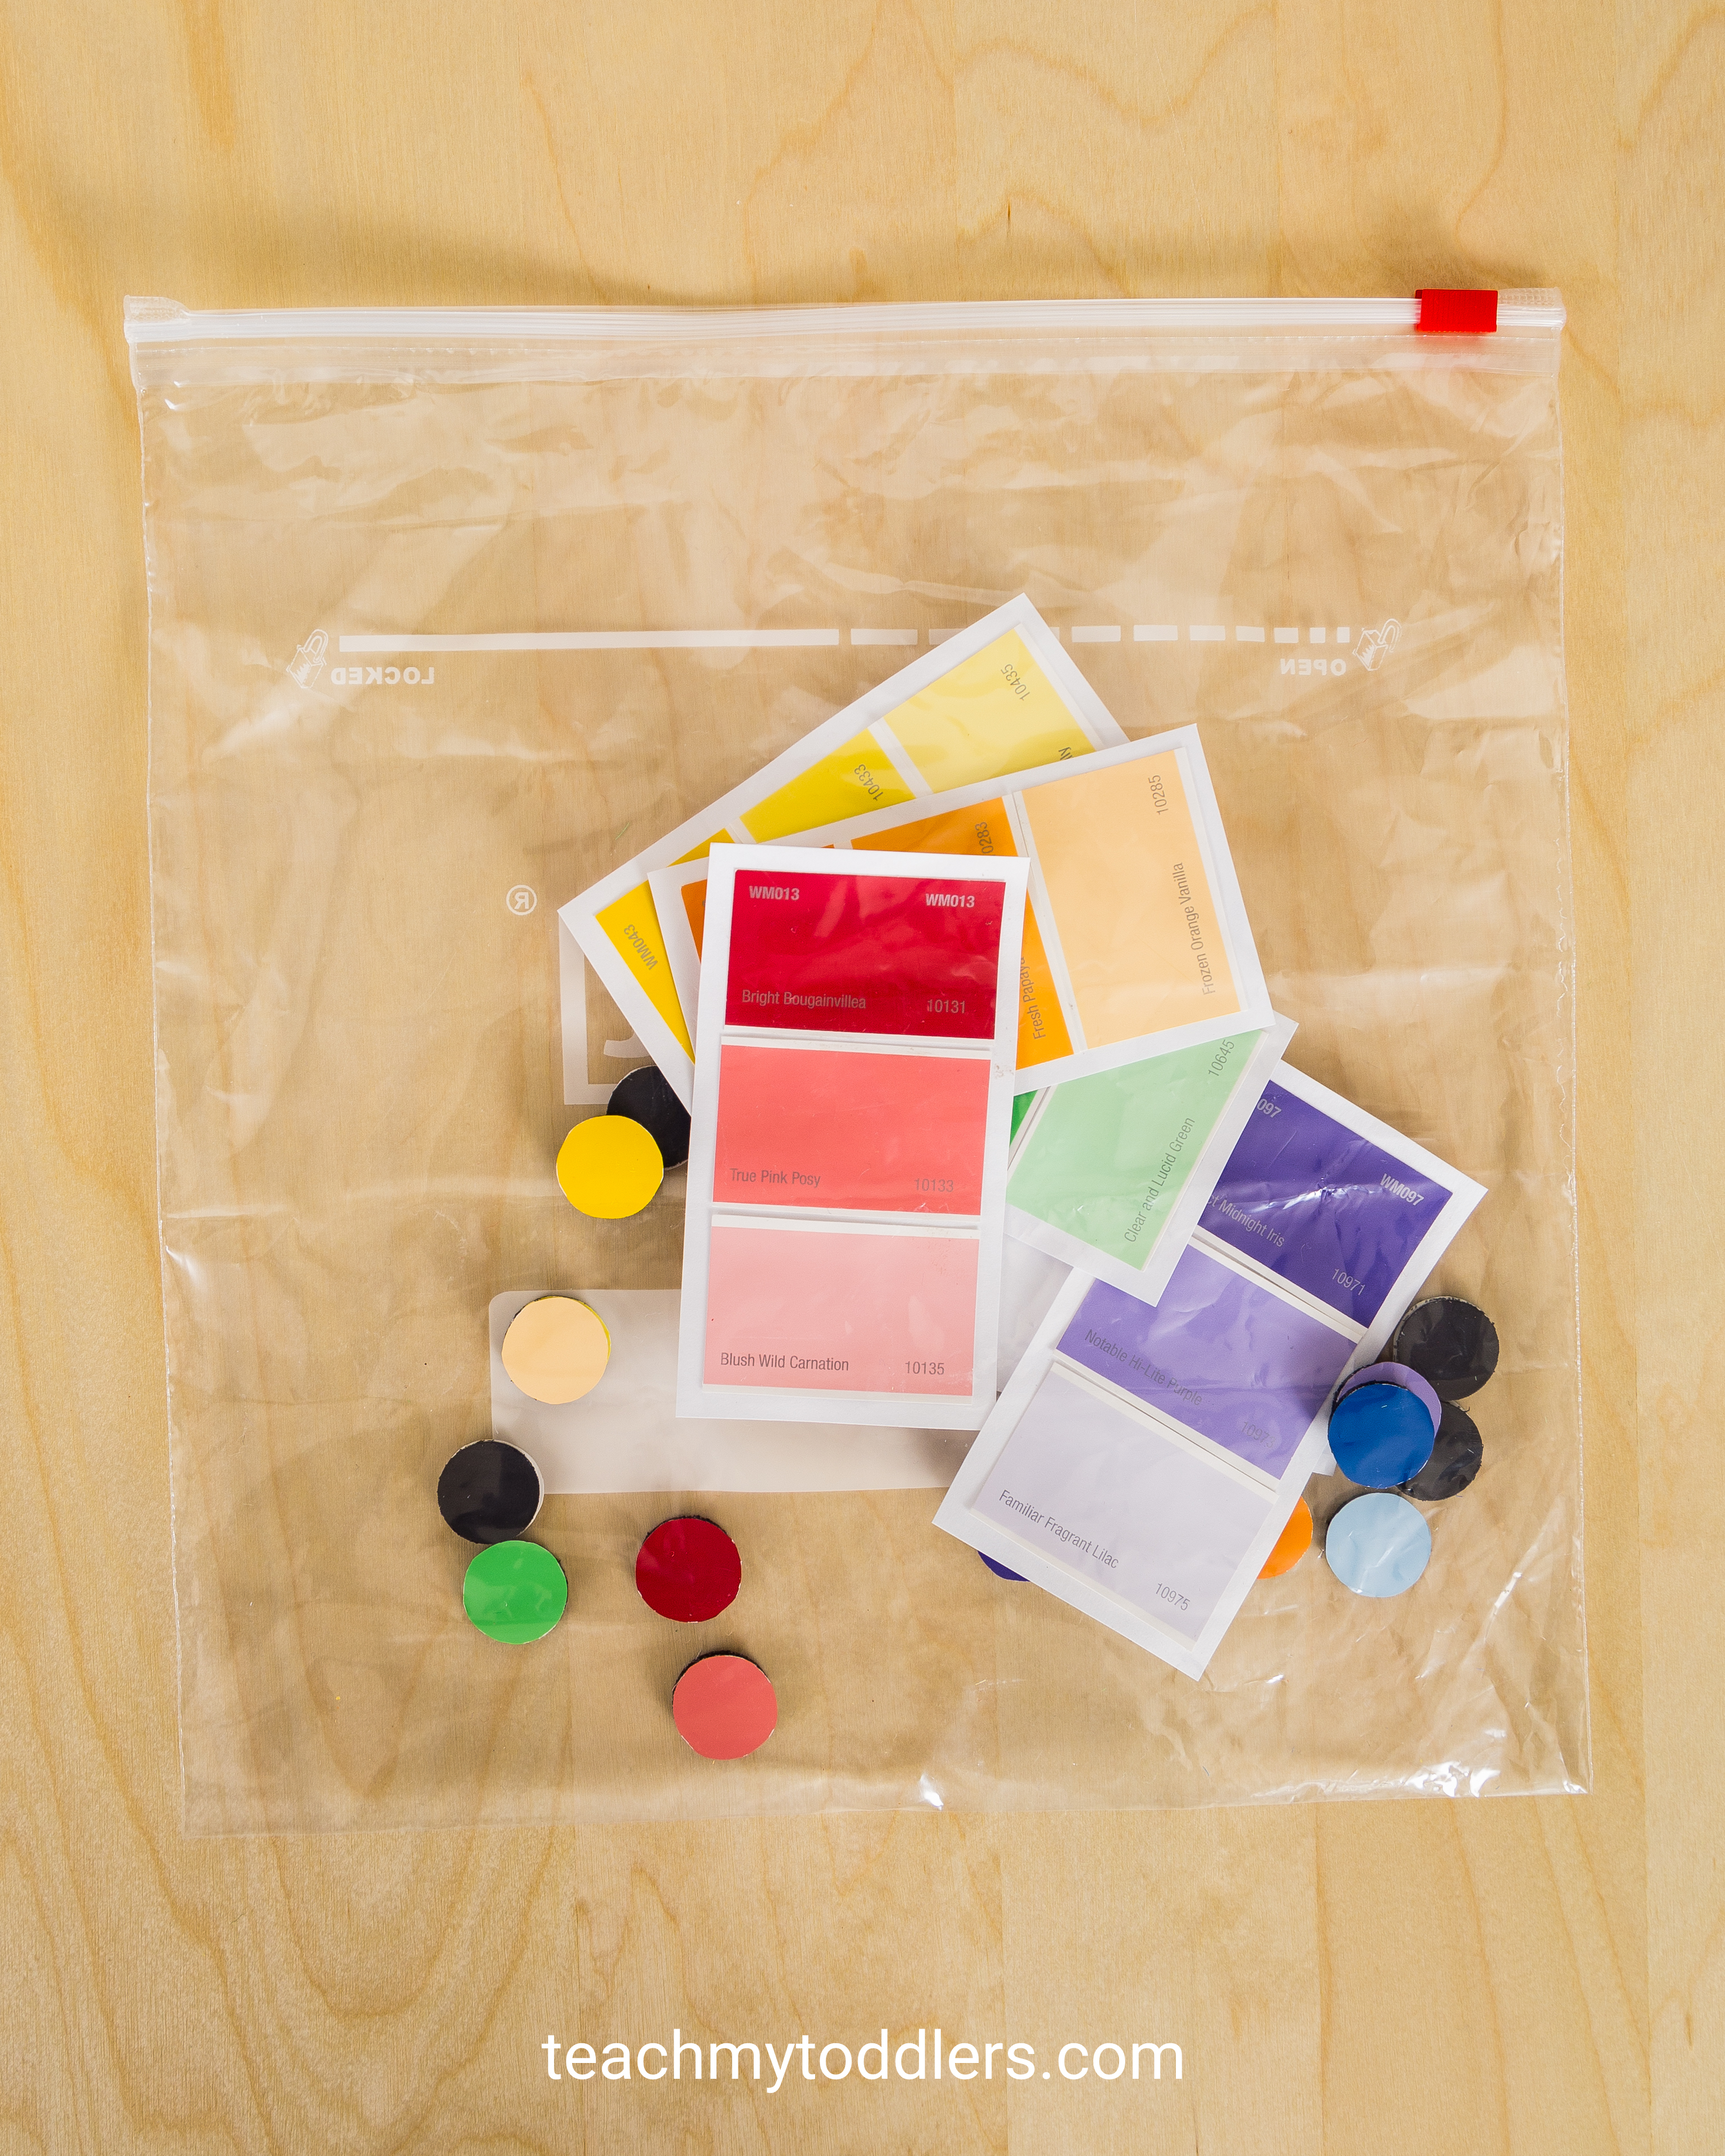 This is a great matching game to teach your toddlers colors using paint chips